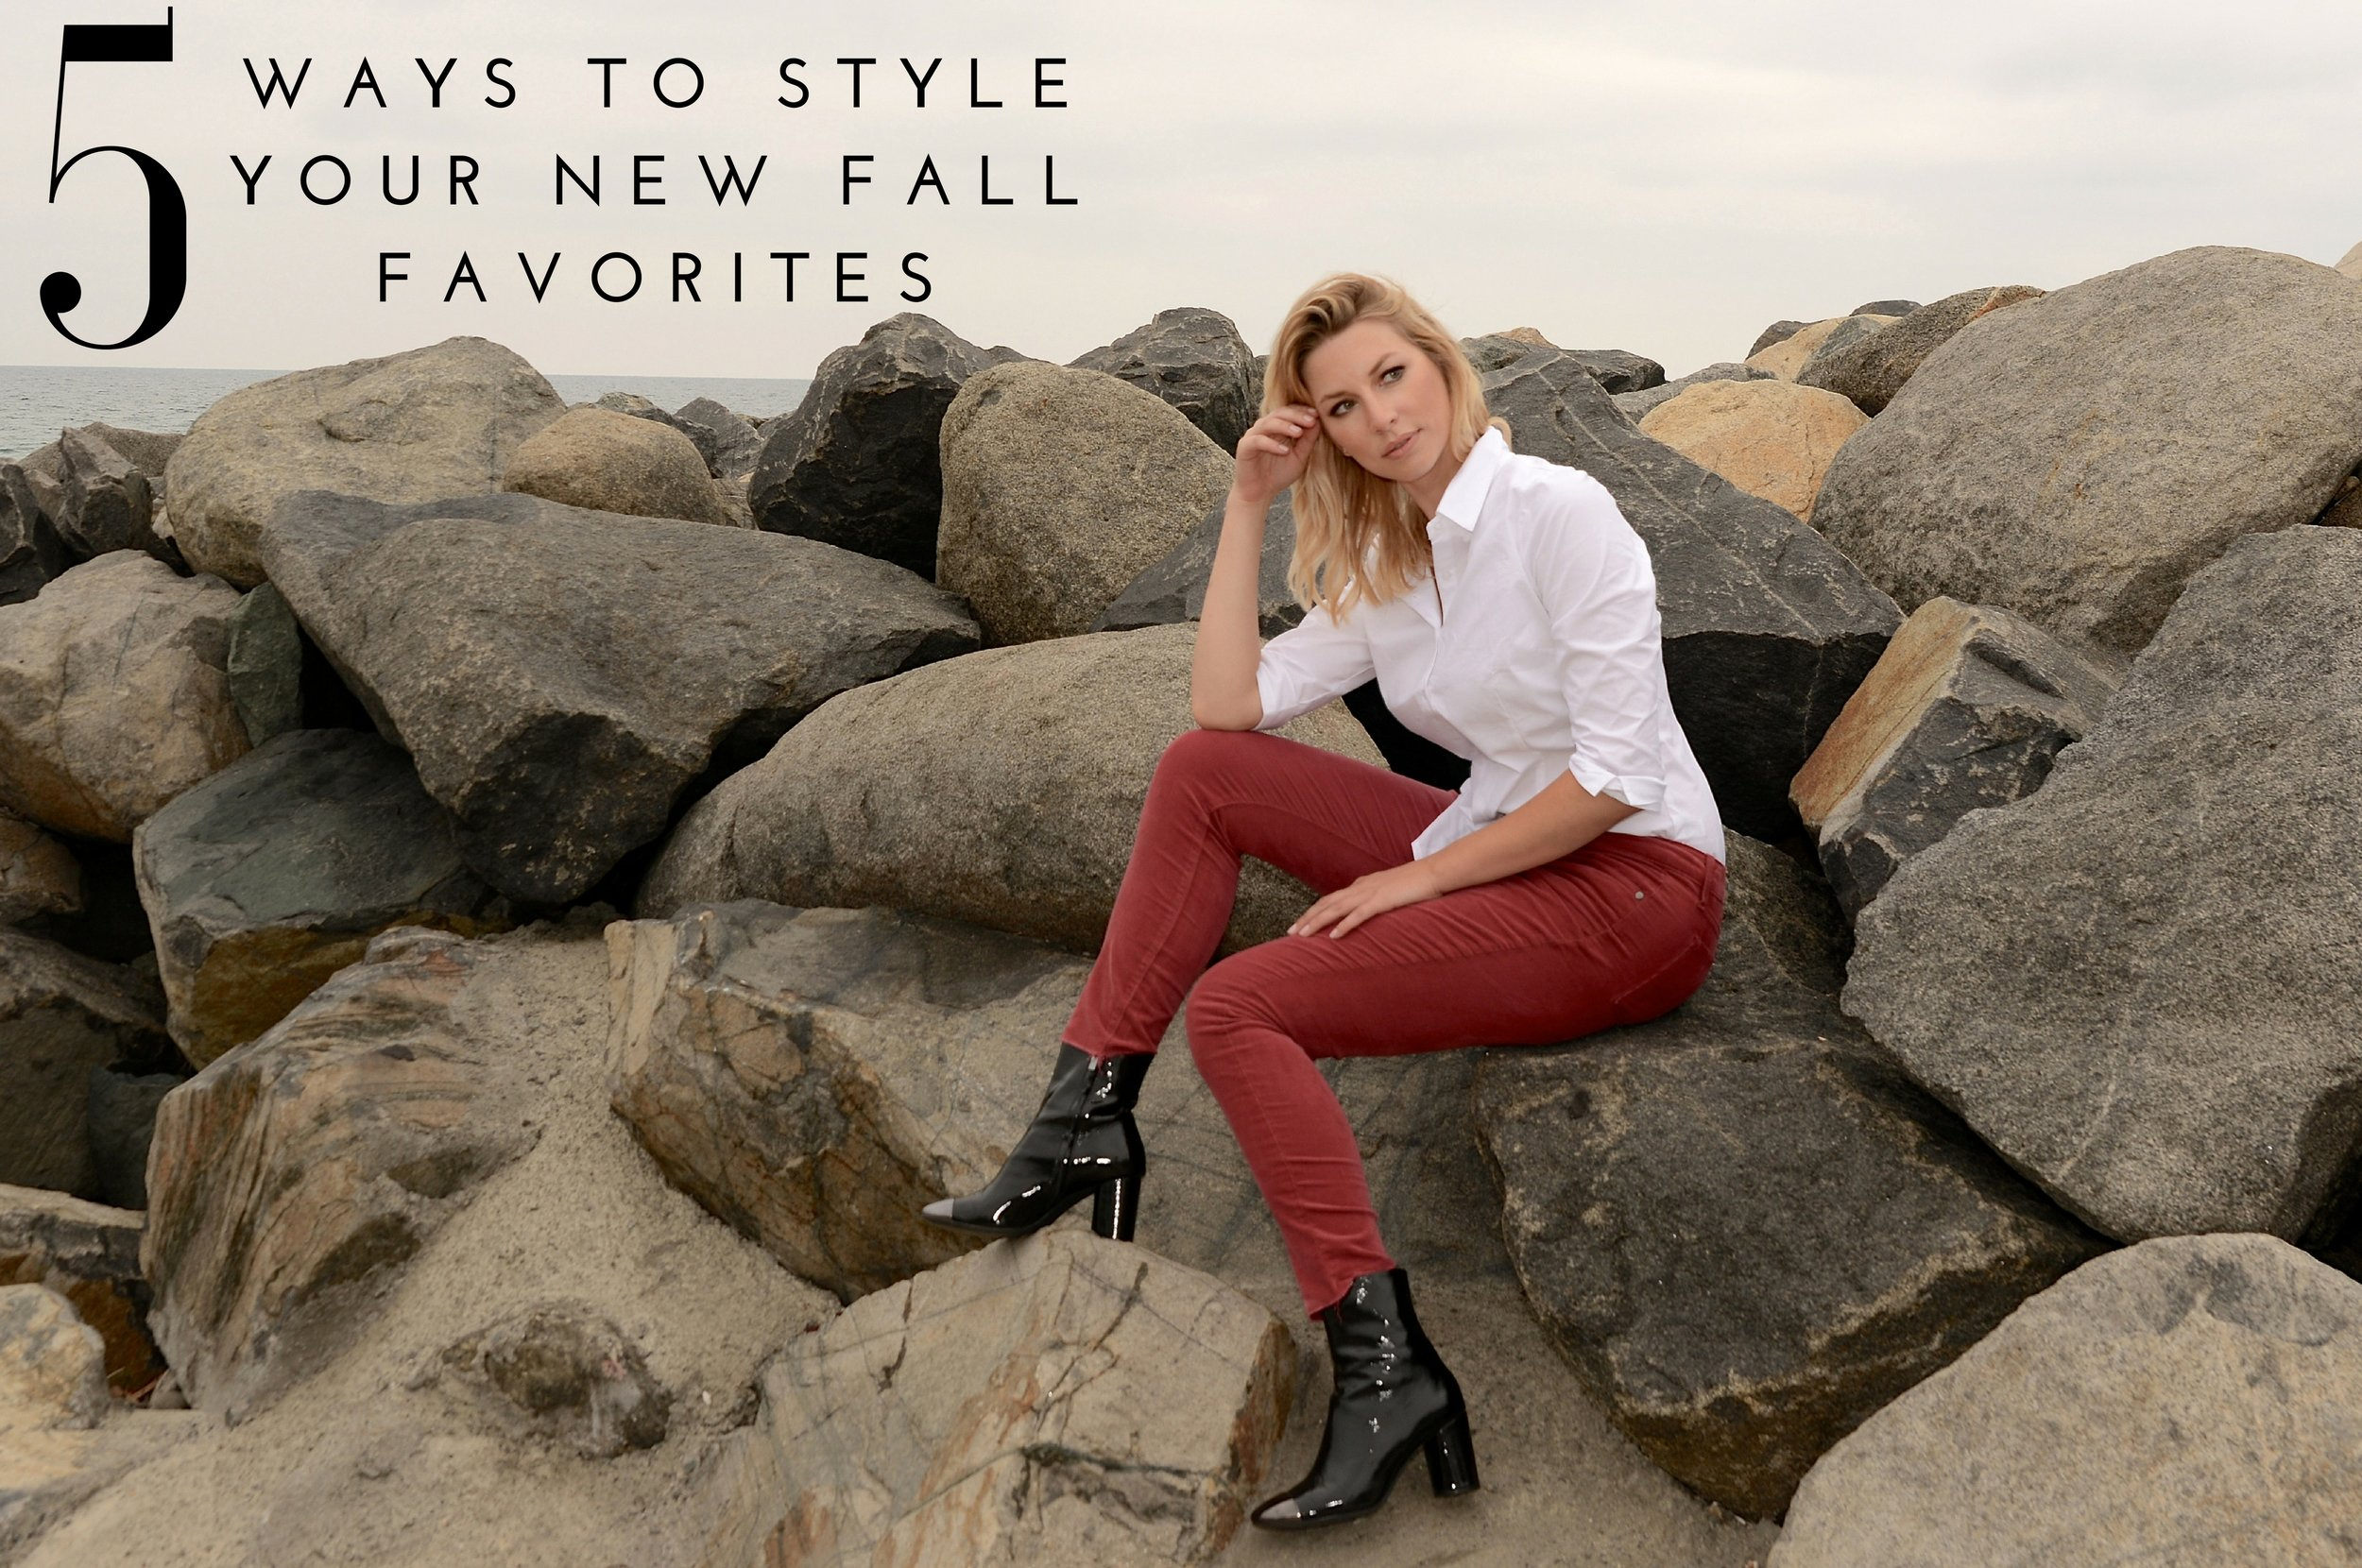 ways to style your new fall favorites.jpg